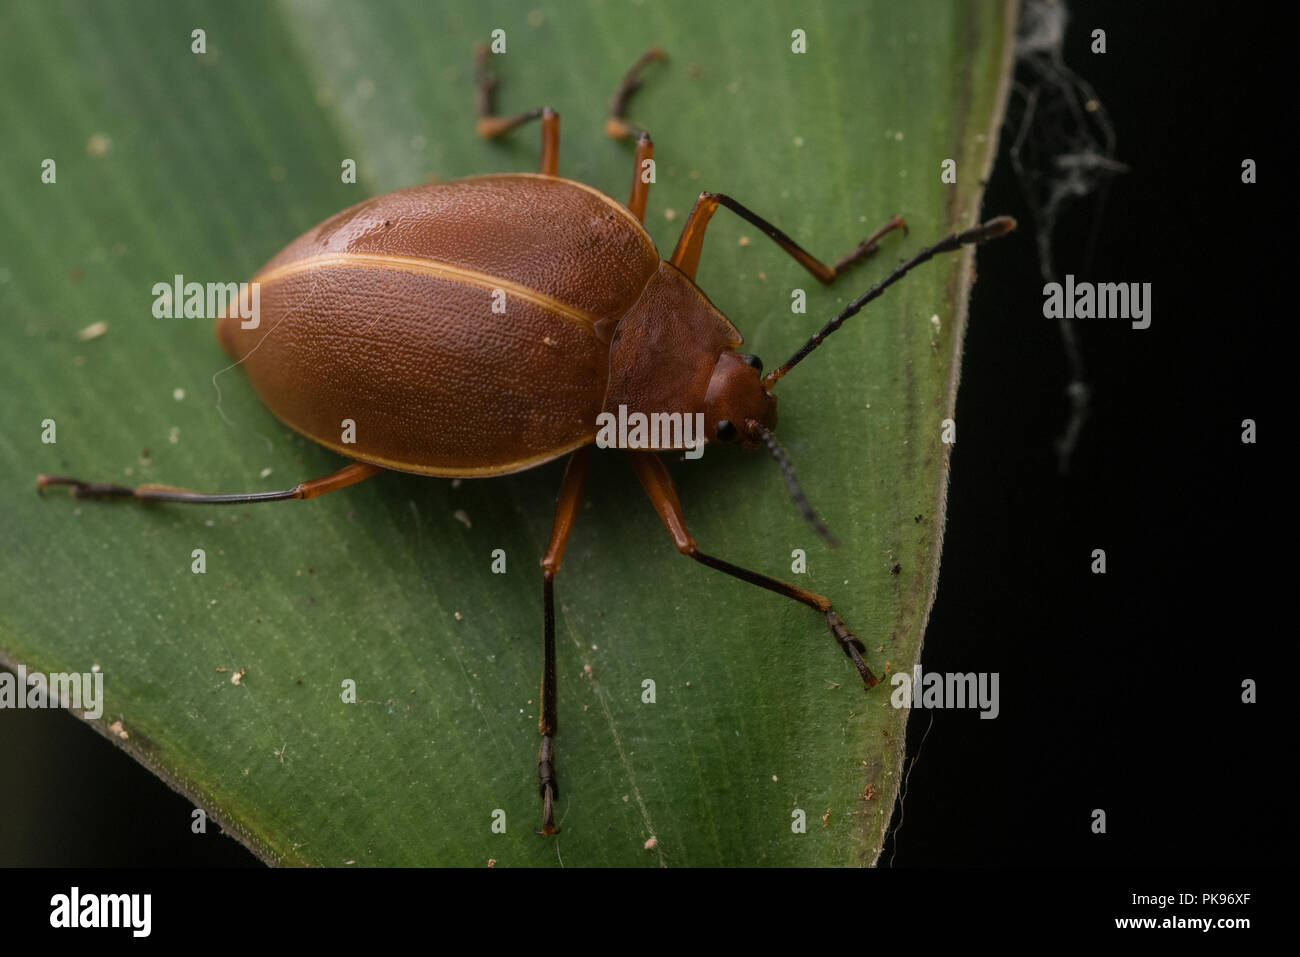 A orange leaf beetle or perhaps fungus beetle from the jungle in South America. - Stock Image